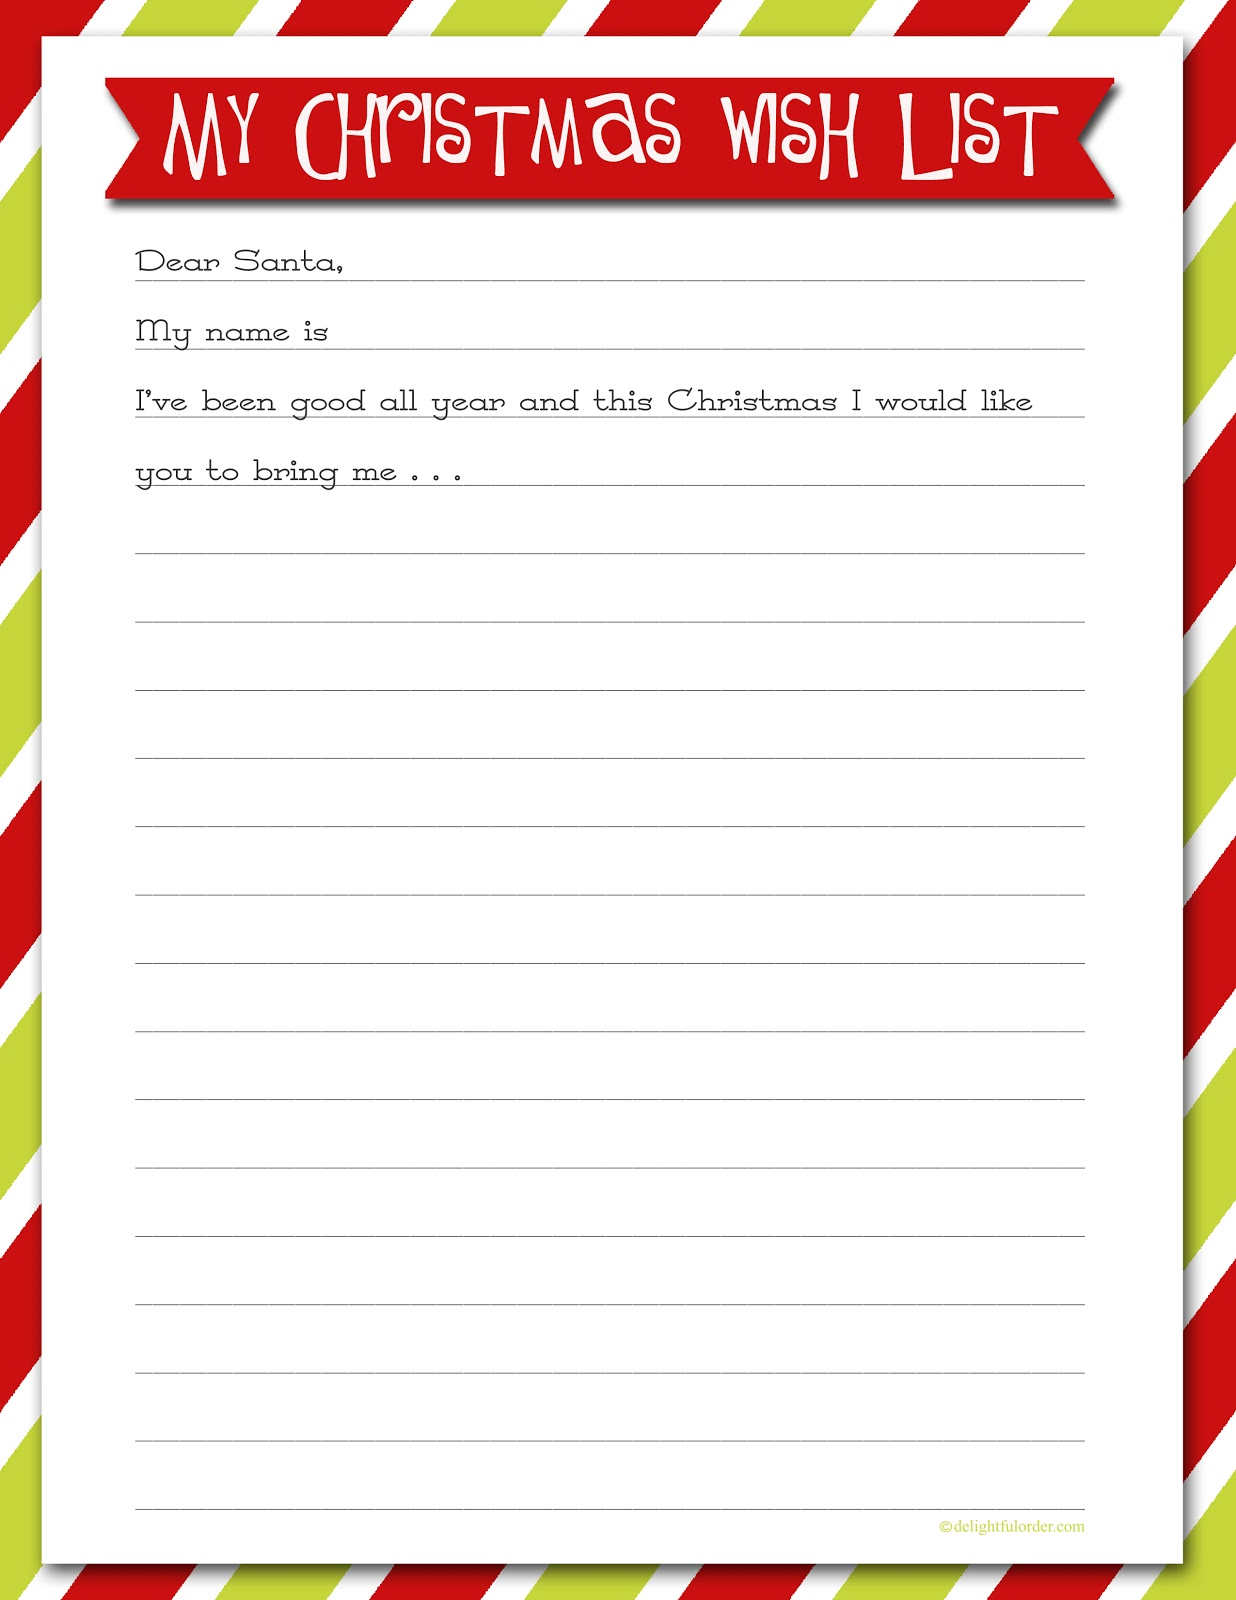 Christmas Checklist Template word template to do list excel do – Christmas Card List Template